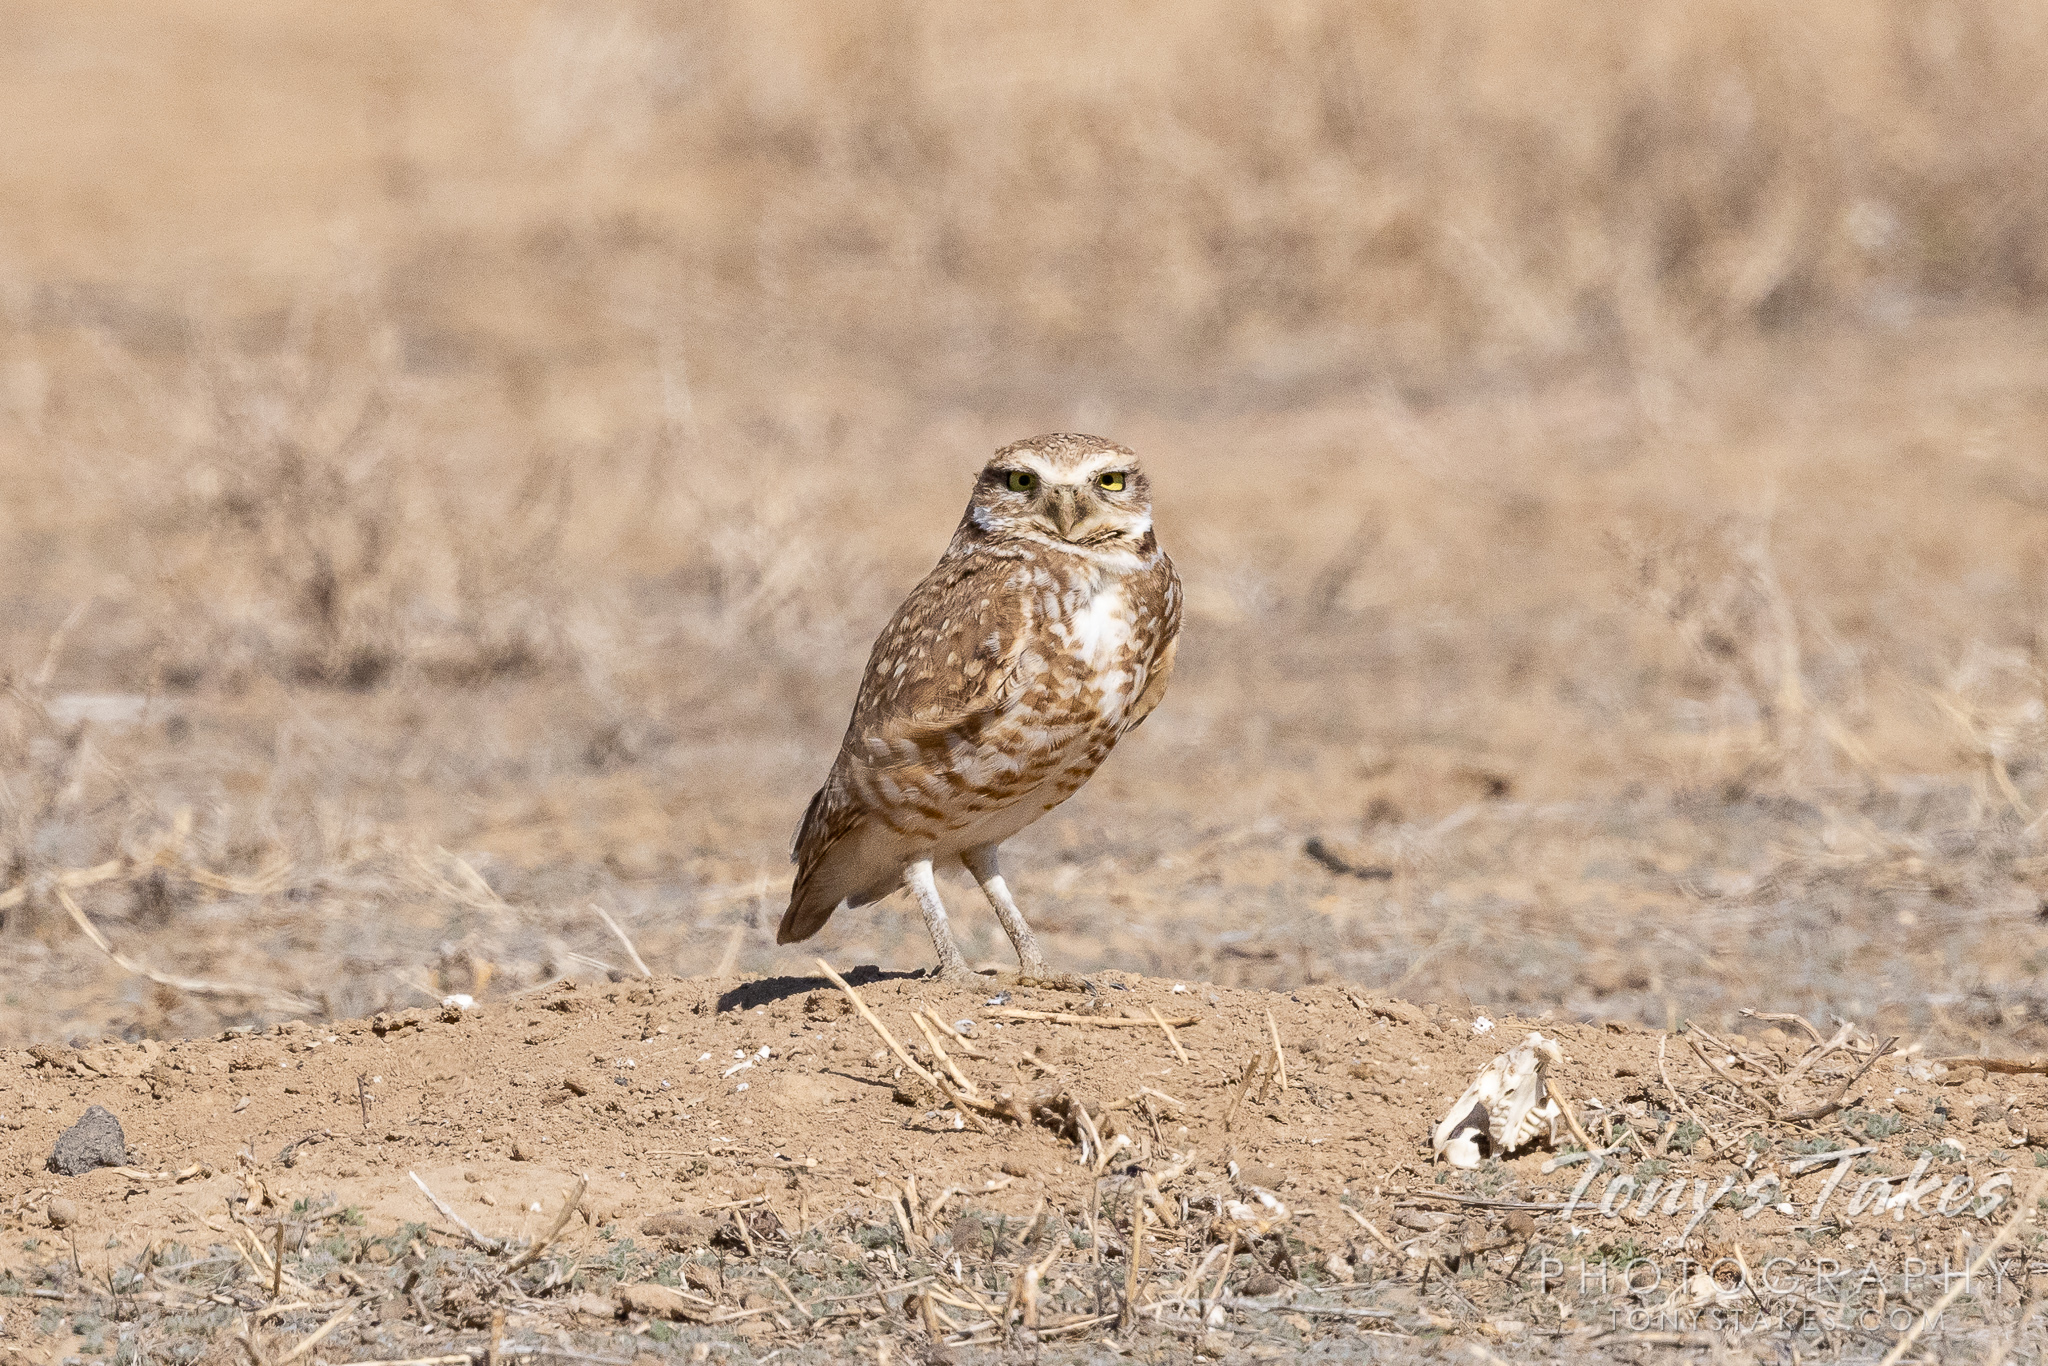 Burrowing owls return to the Great Plains